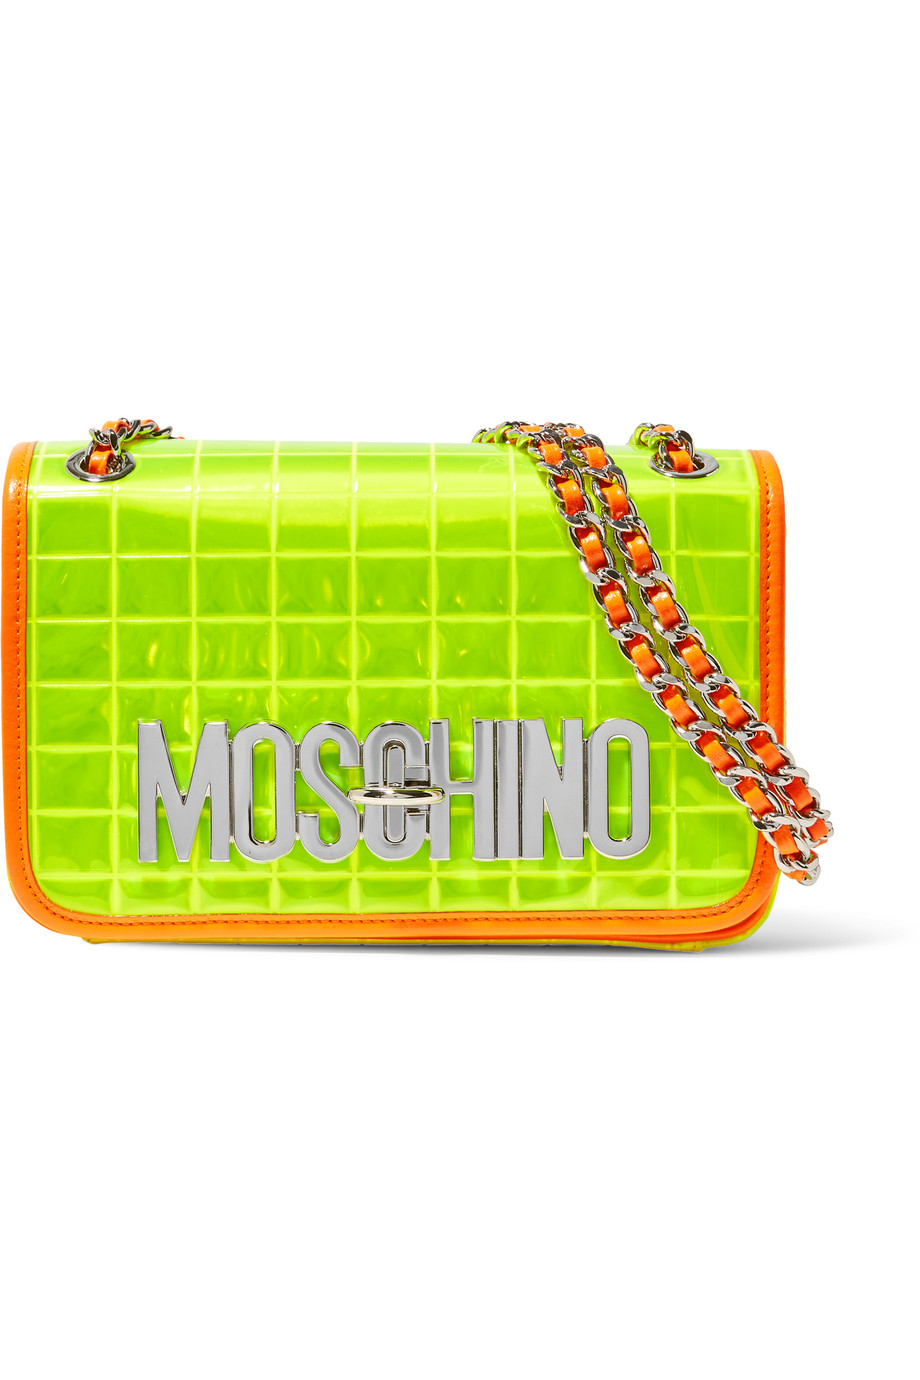 Moschino Faux Leather-Trimmed Quilted PVC Shoulder Bag, Bright Yellow, Women's